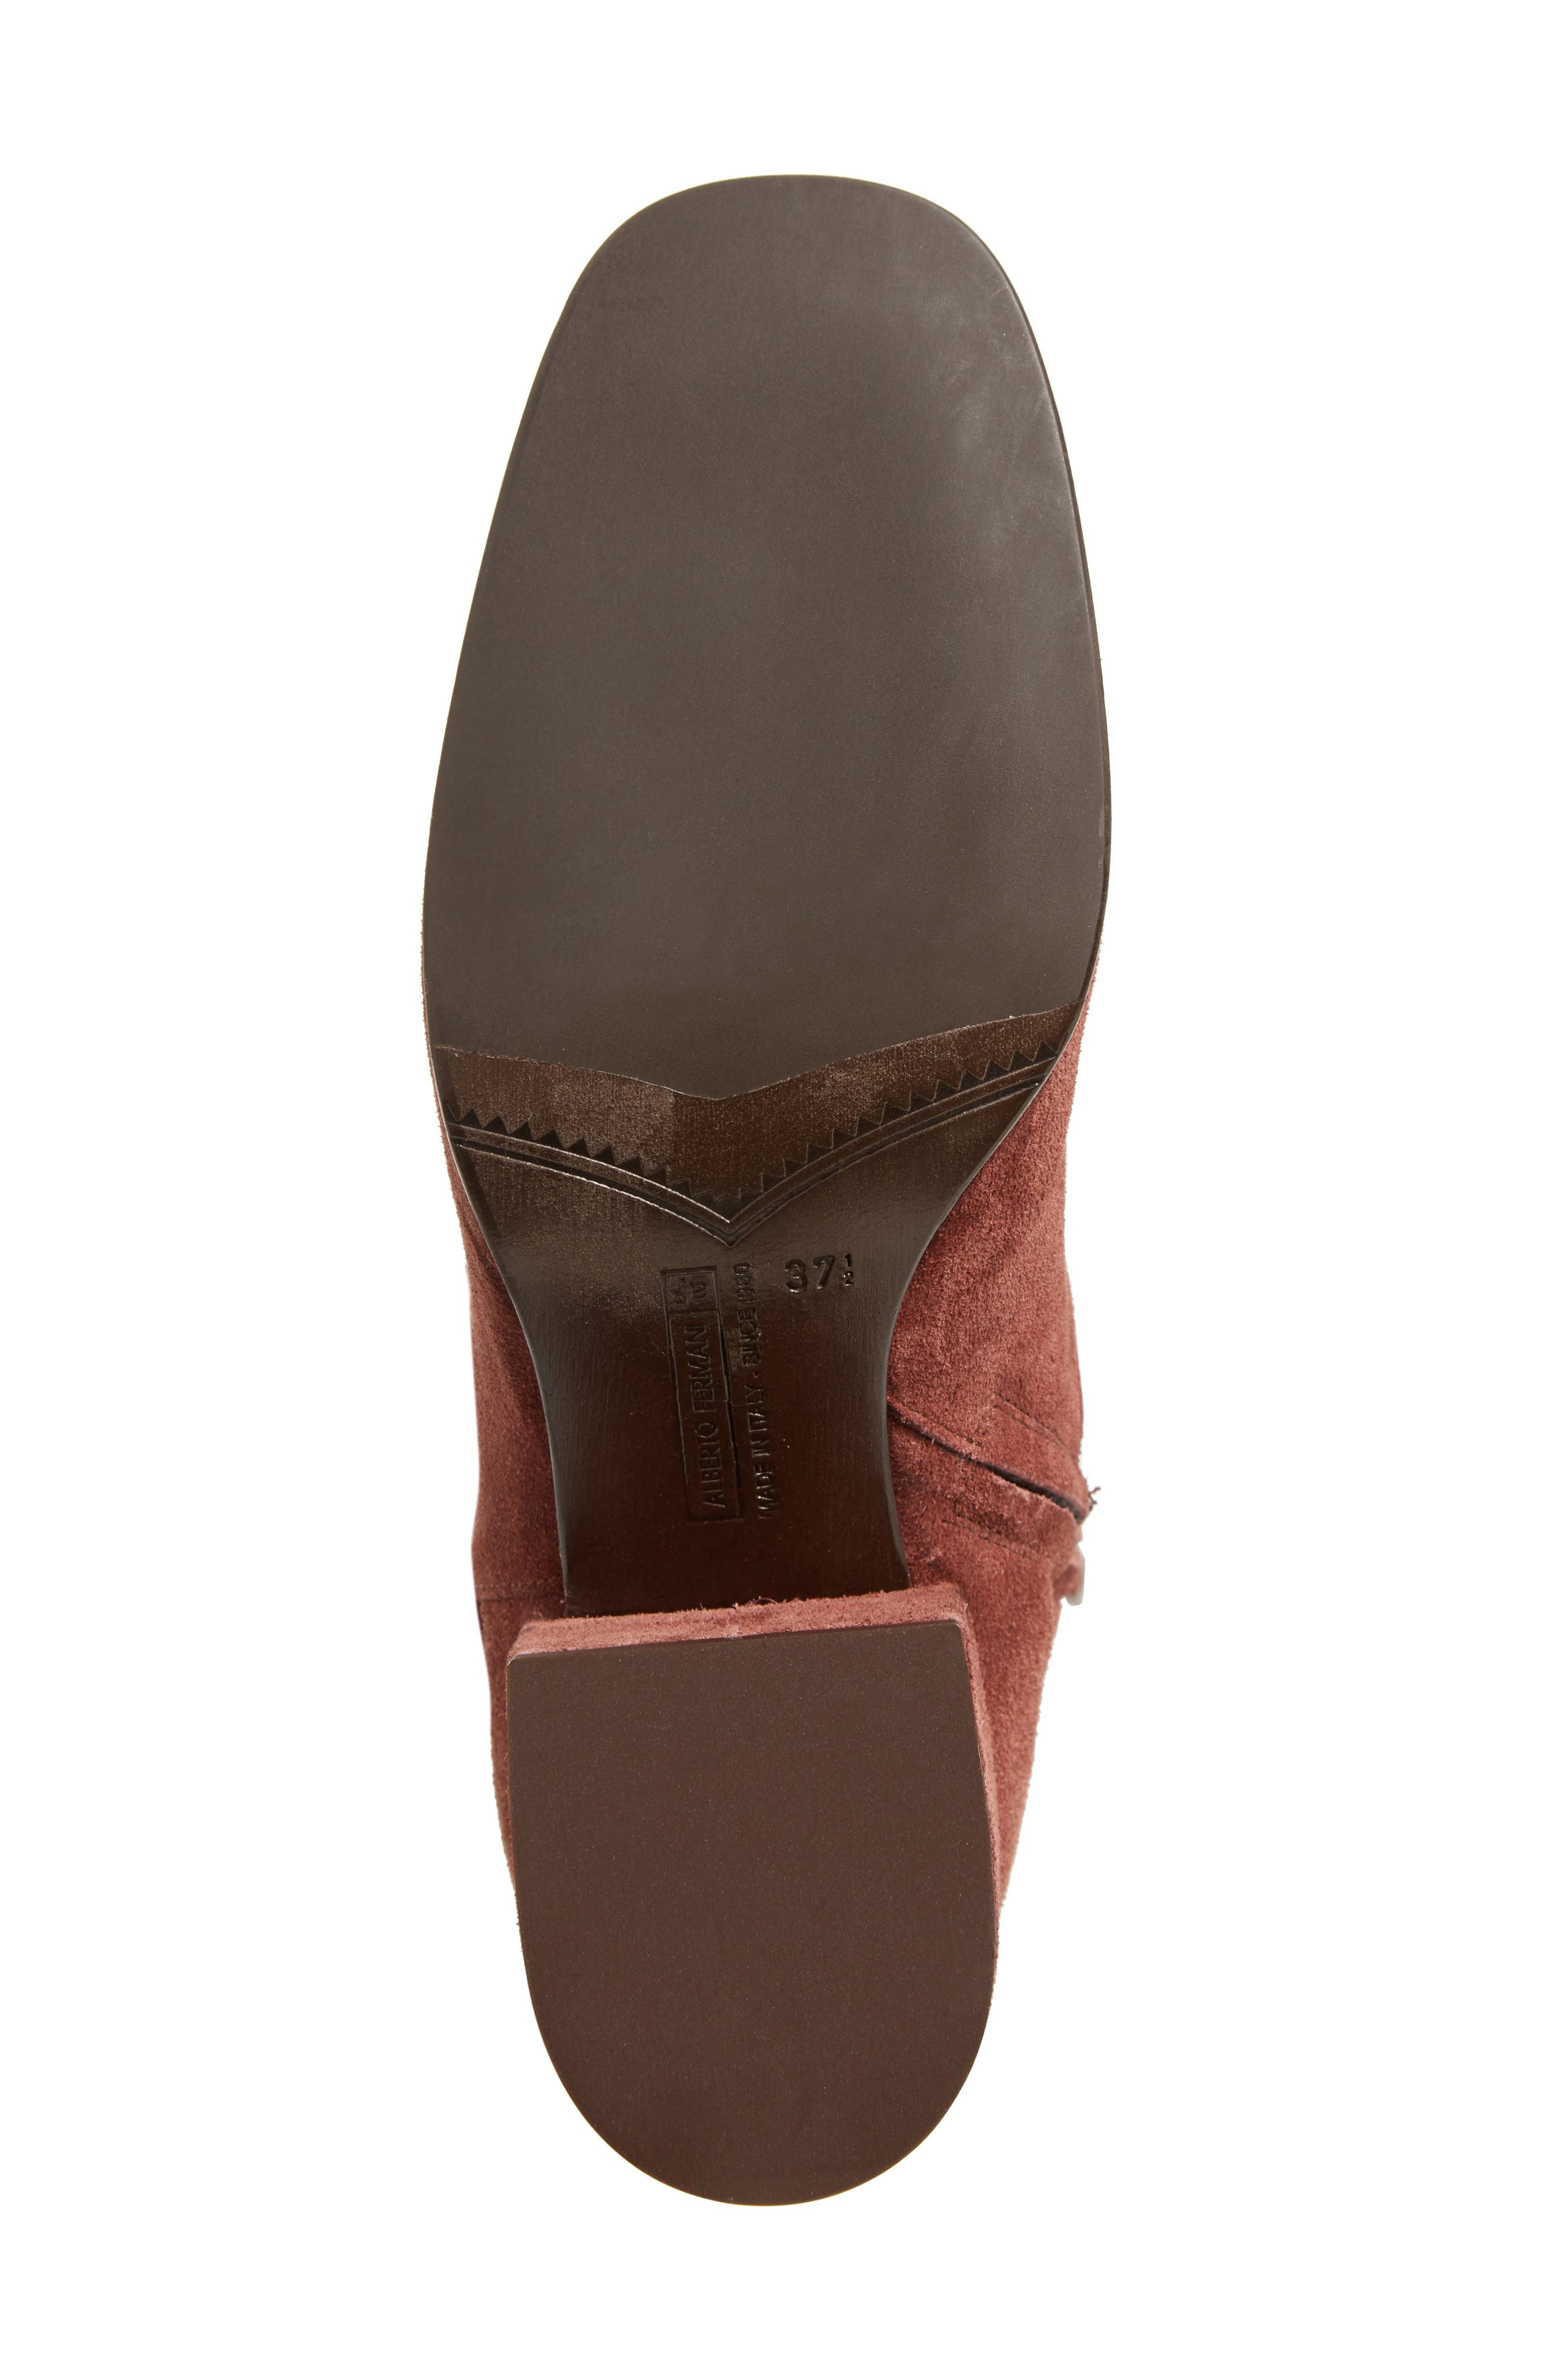 Delia Over the Knee Boot,                             Alternate thumbnail 6, color,                             930